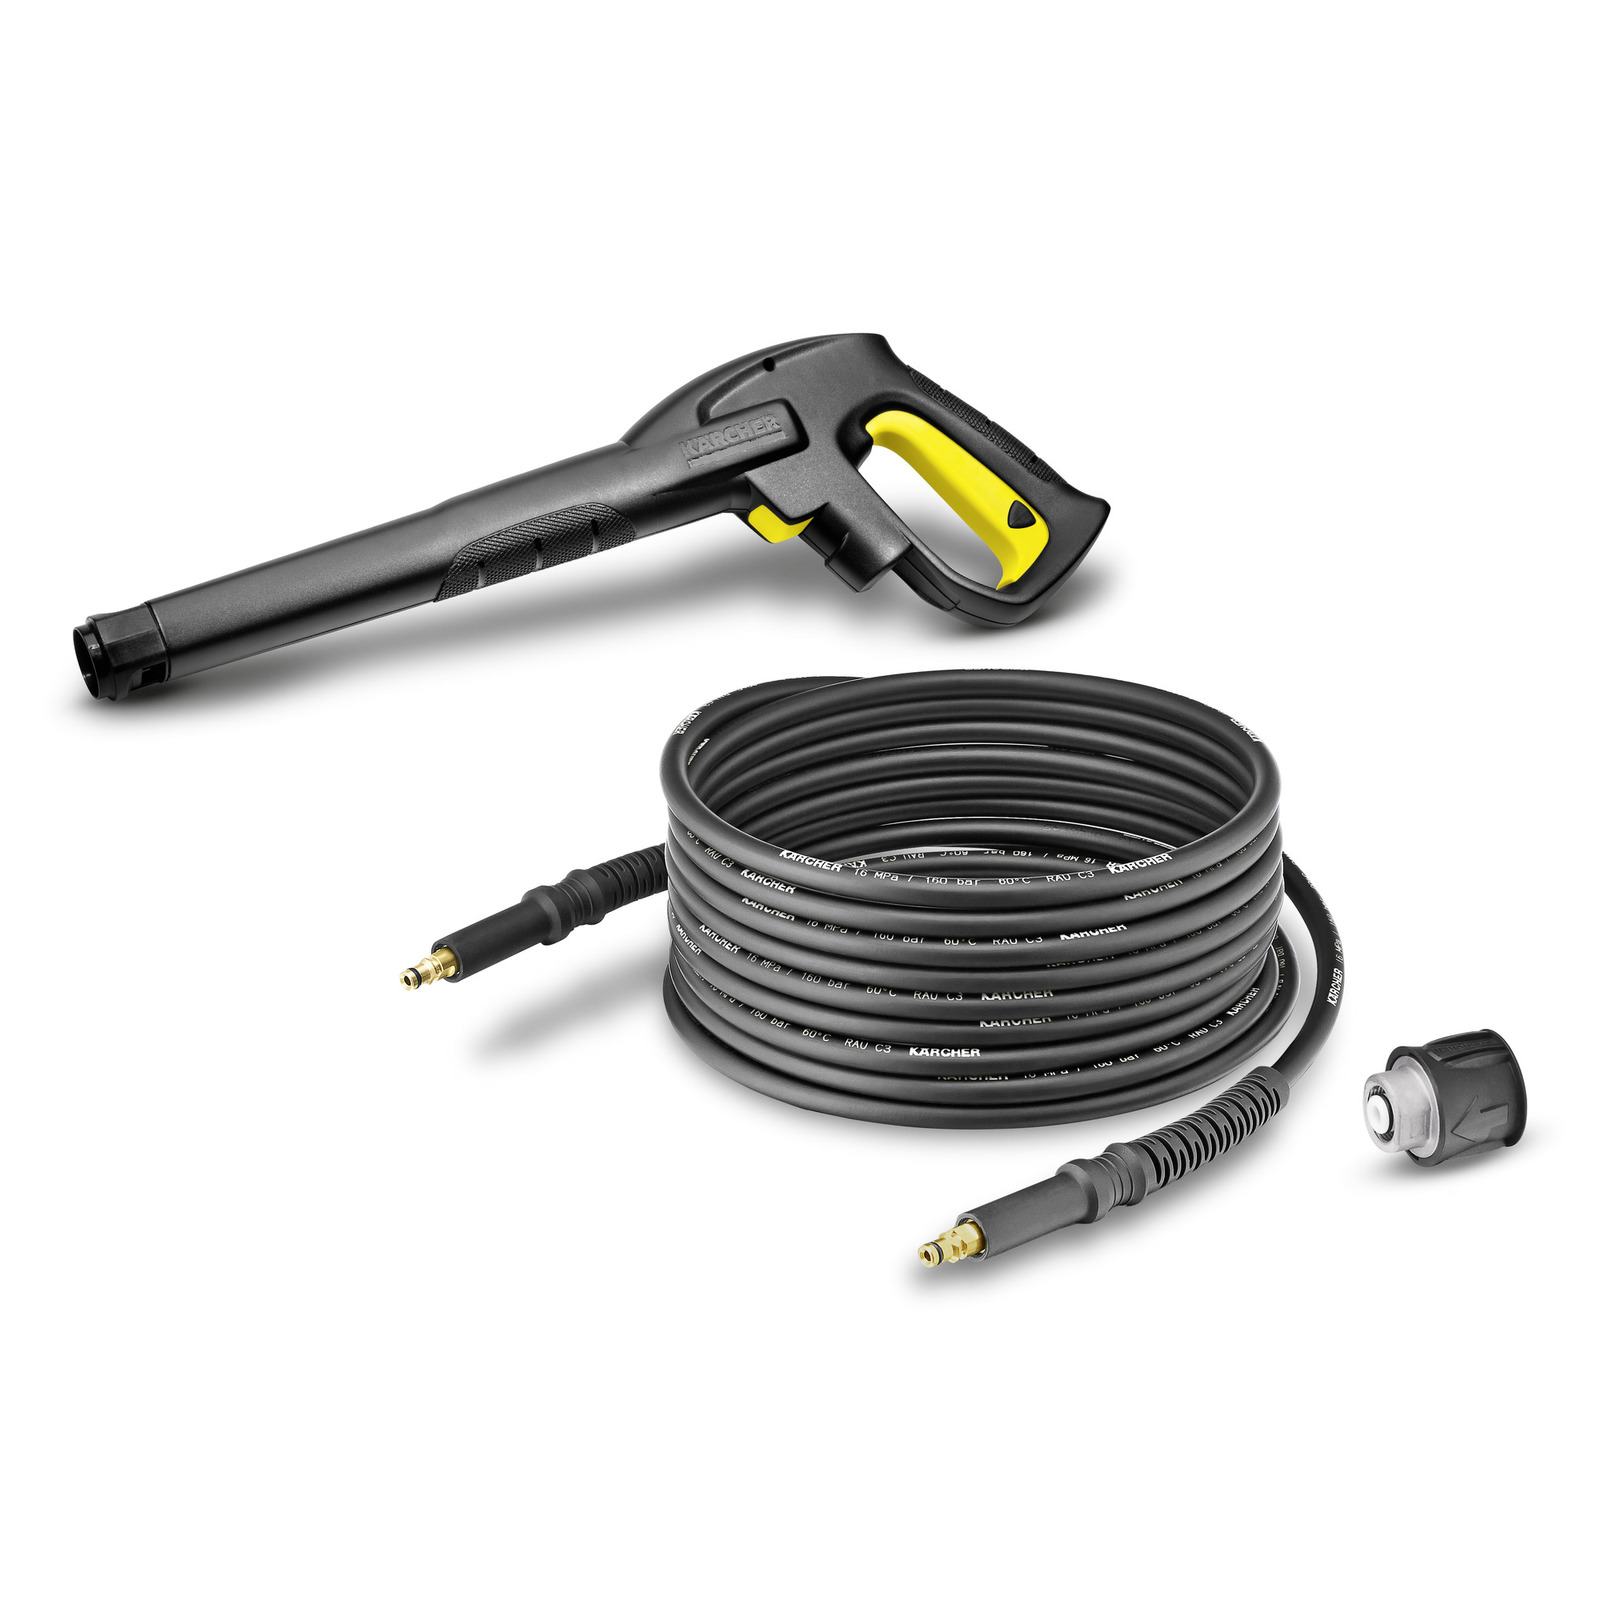 Kärcher HK 12 high pressure hose kit